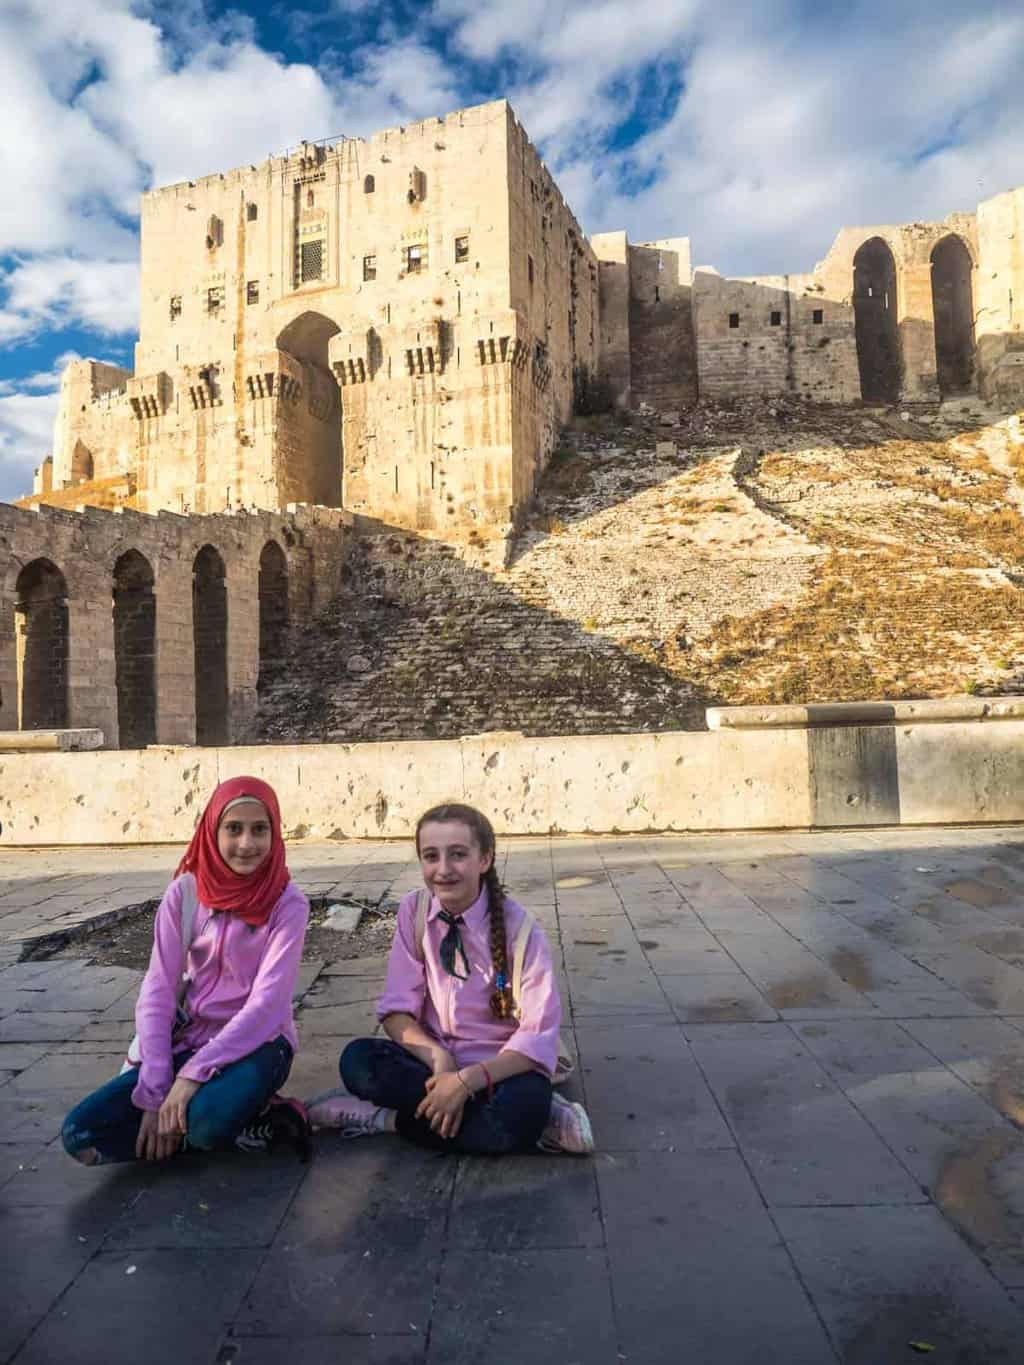 Aleppo citadel in 2017 young school kids